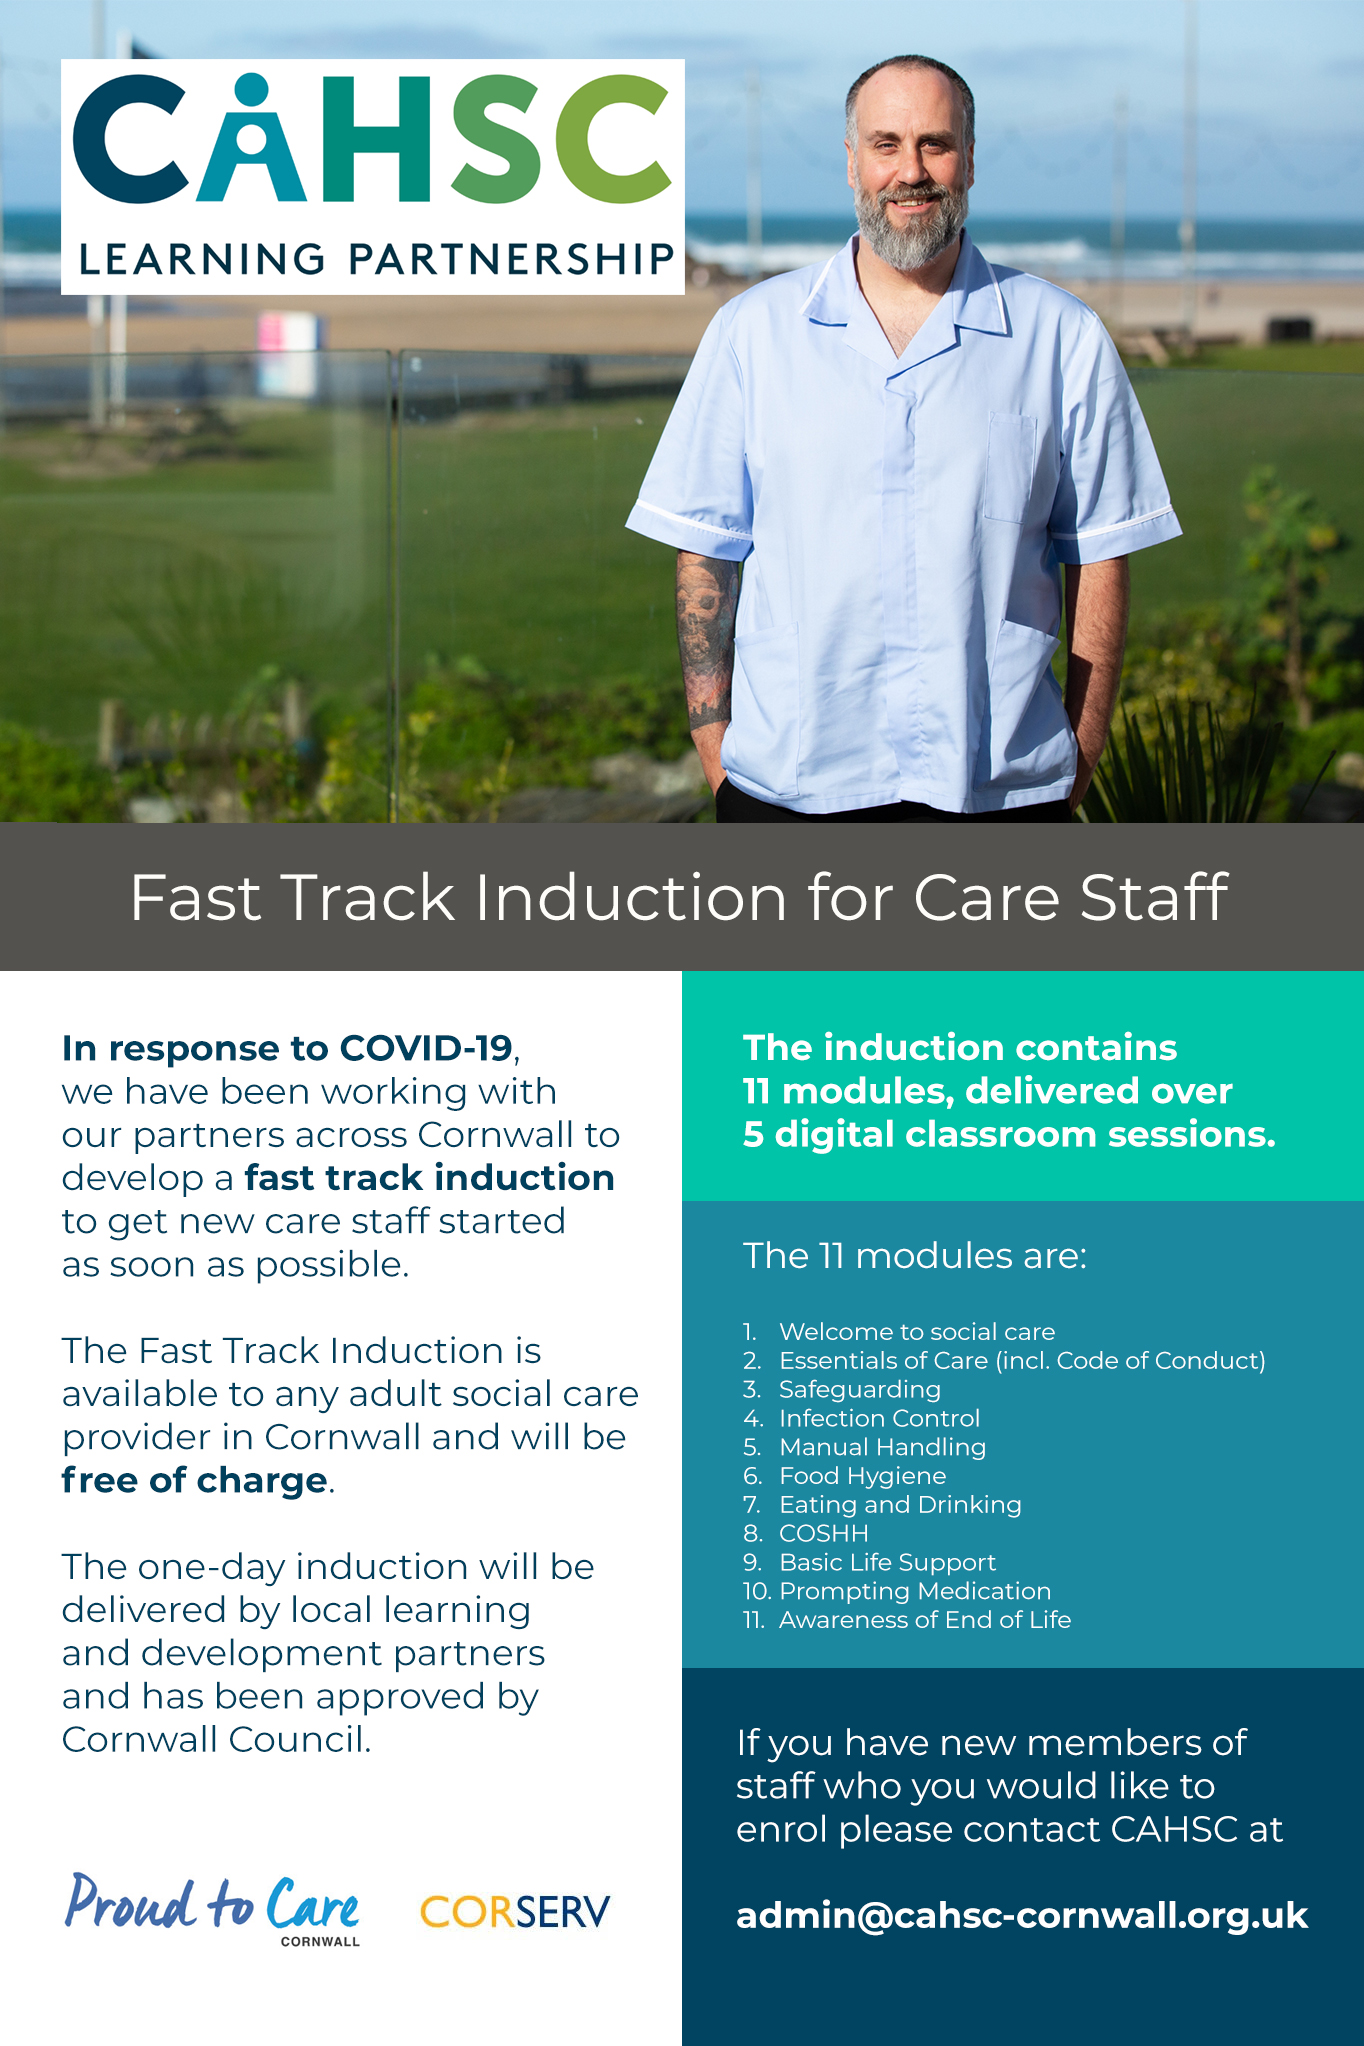 CAHSC fast track induction